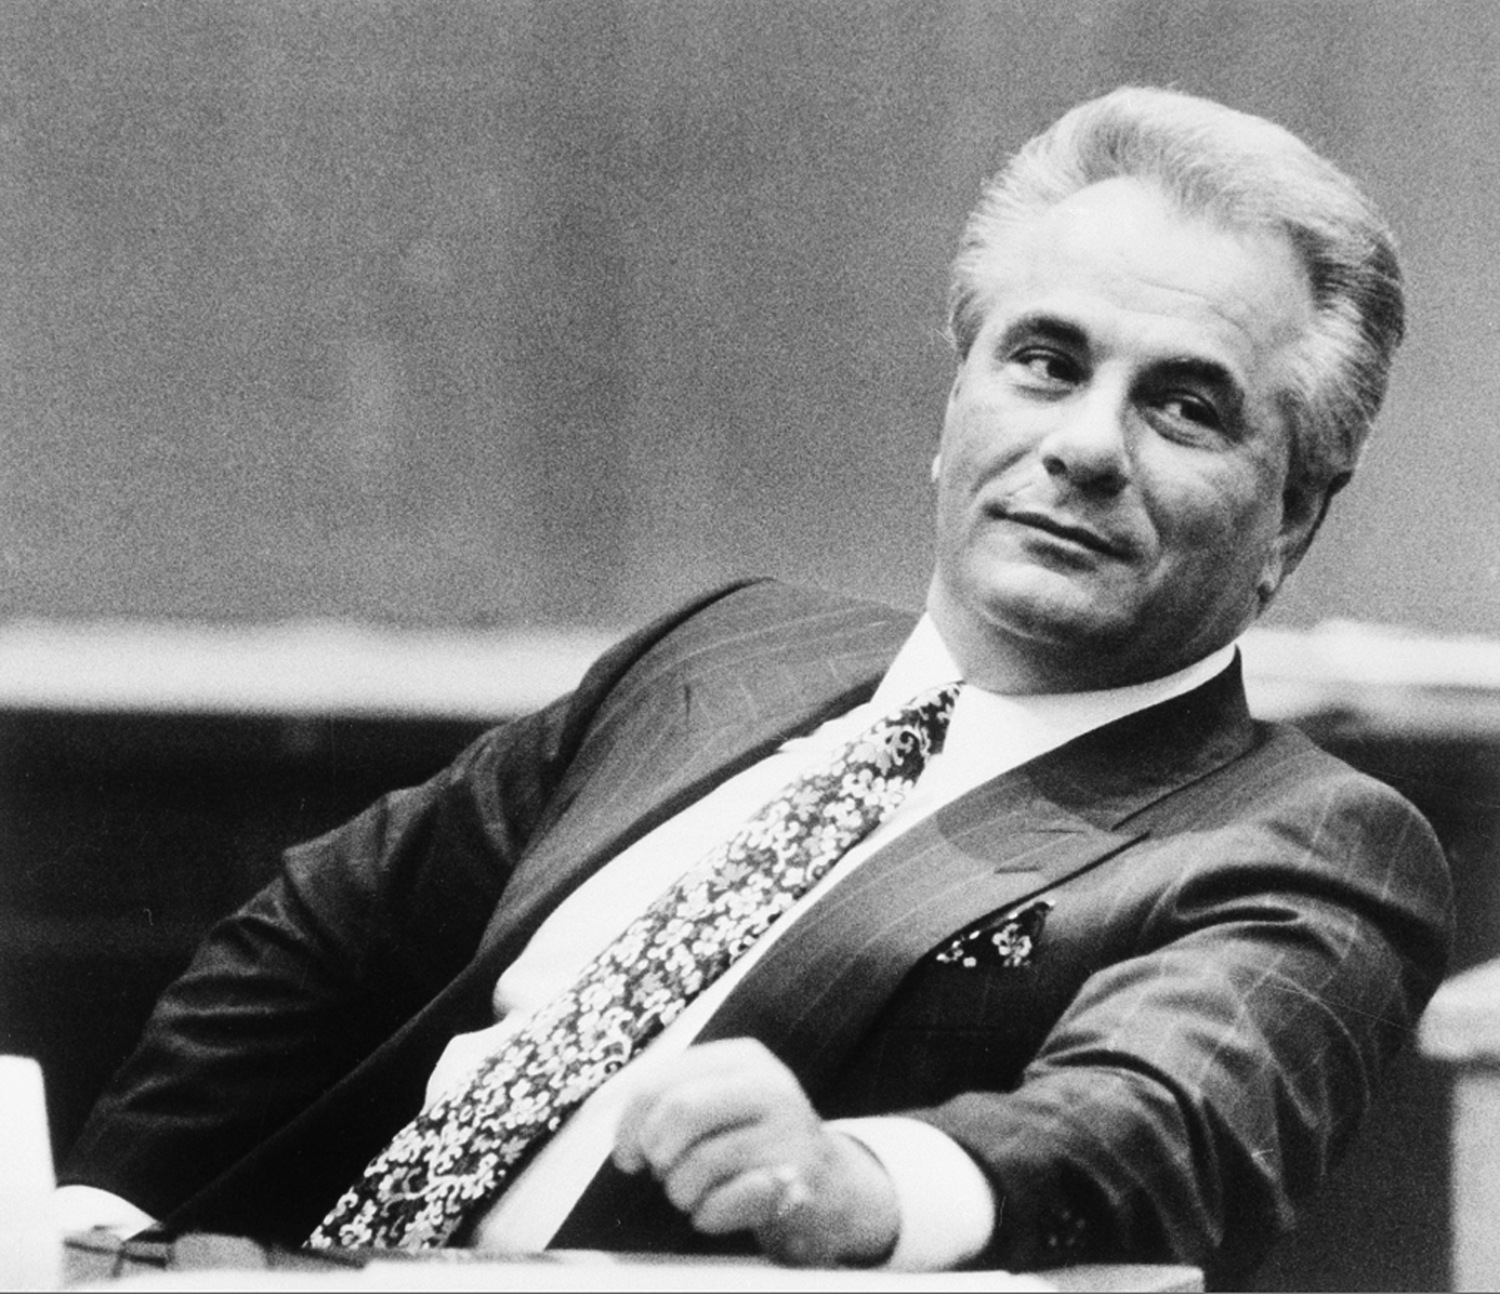 the biography of john gotti John gotti was the head of the gambino crime family he was engaged in various criminal activities, and went to prison a number of times read on to know more.